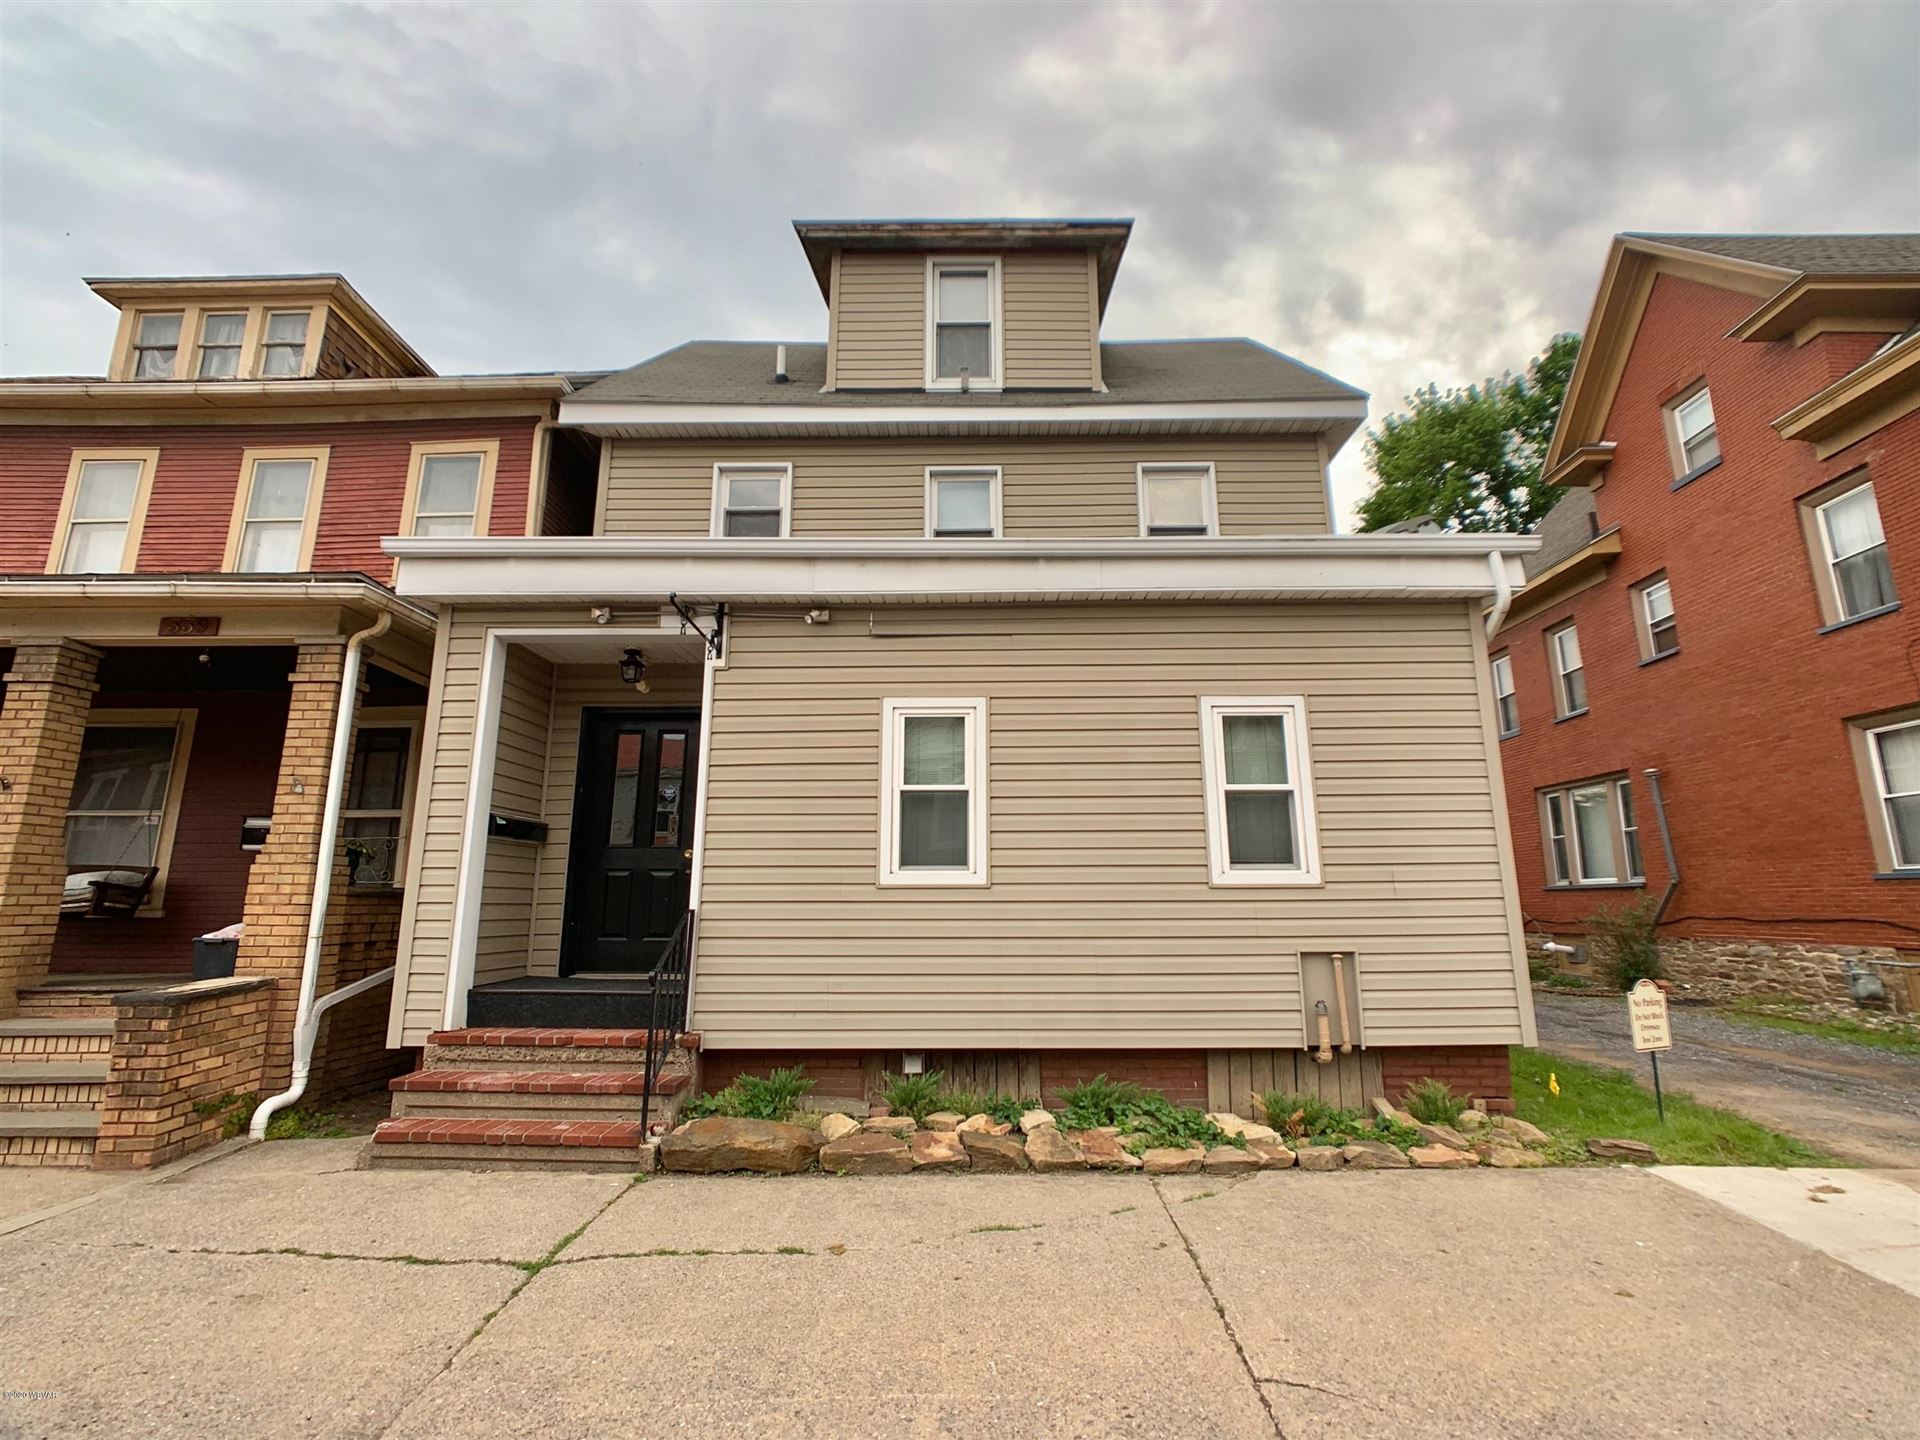 343 E MAIN STREET, Lock Haven, PA 17745 - #: WB-91591